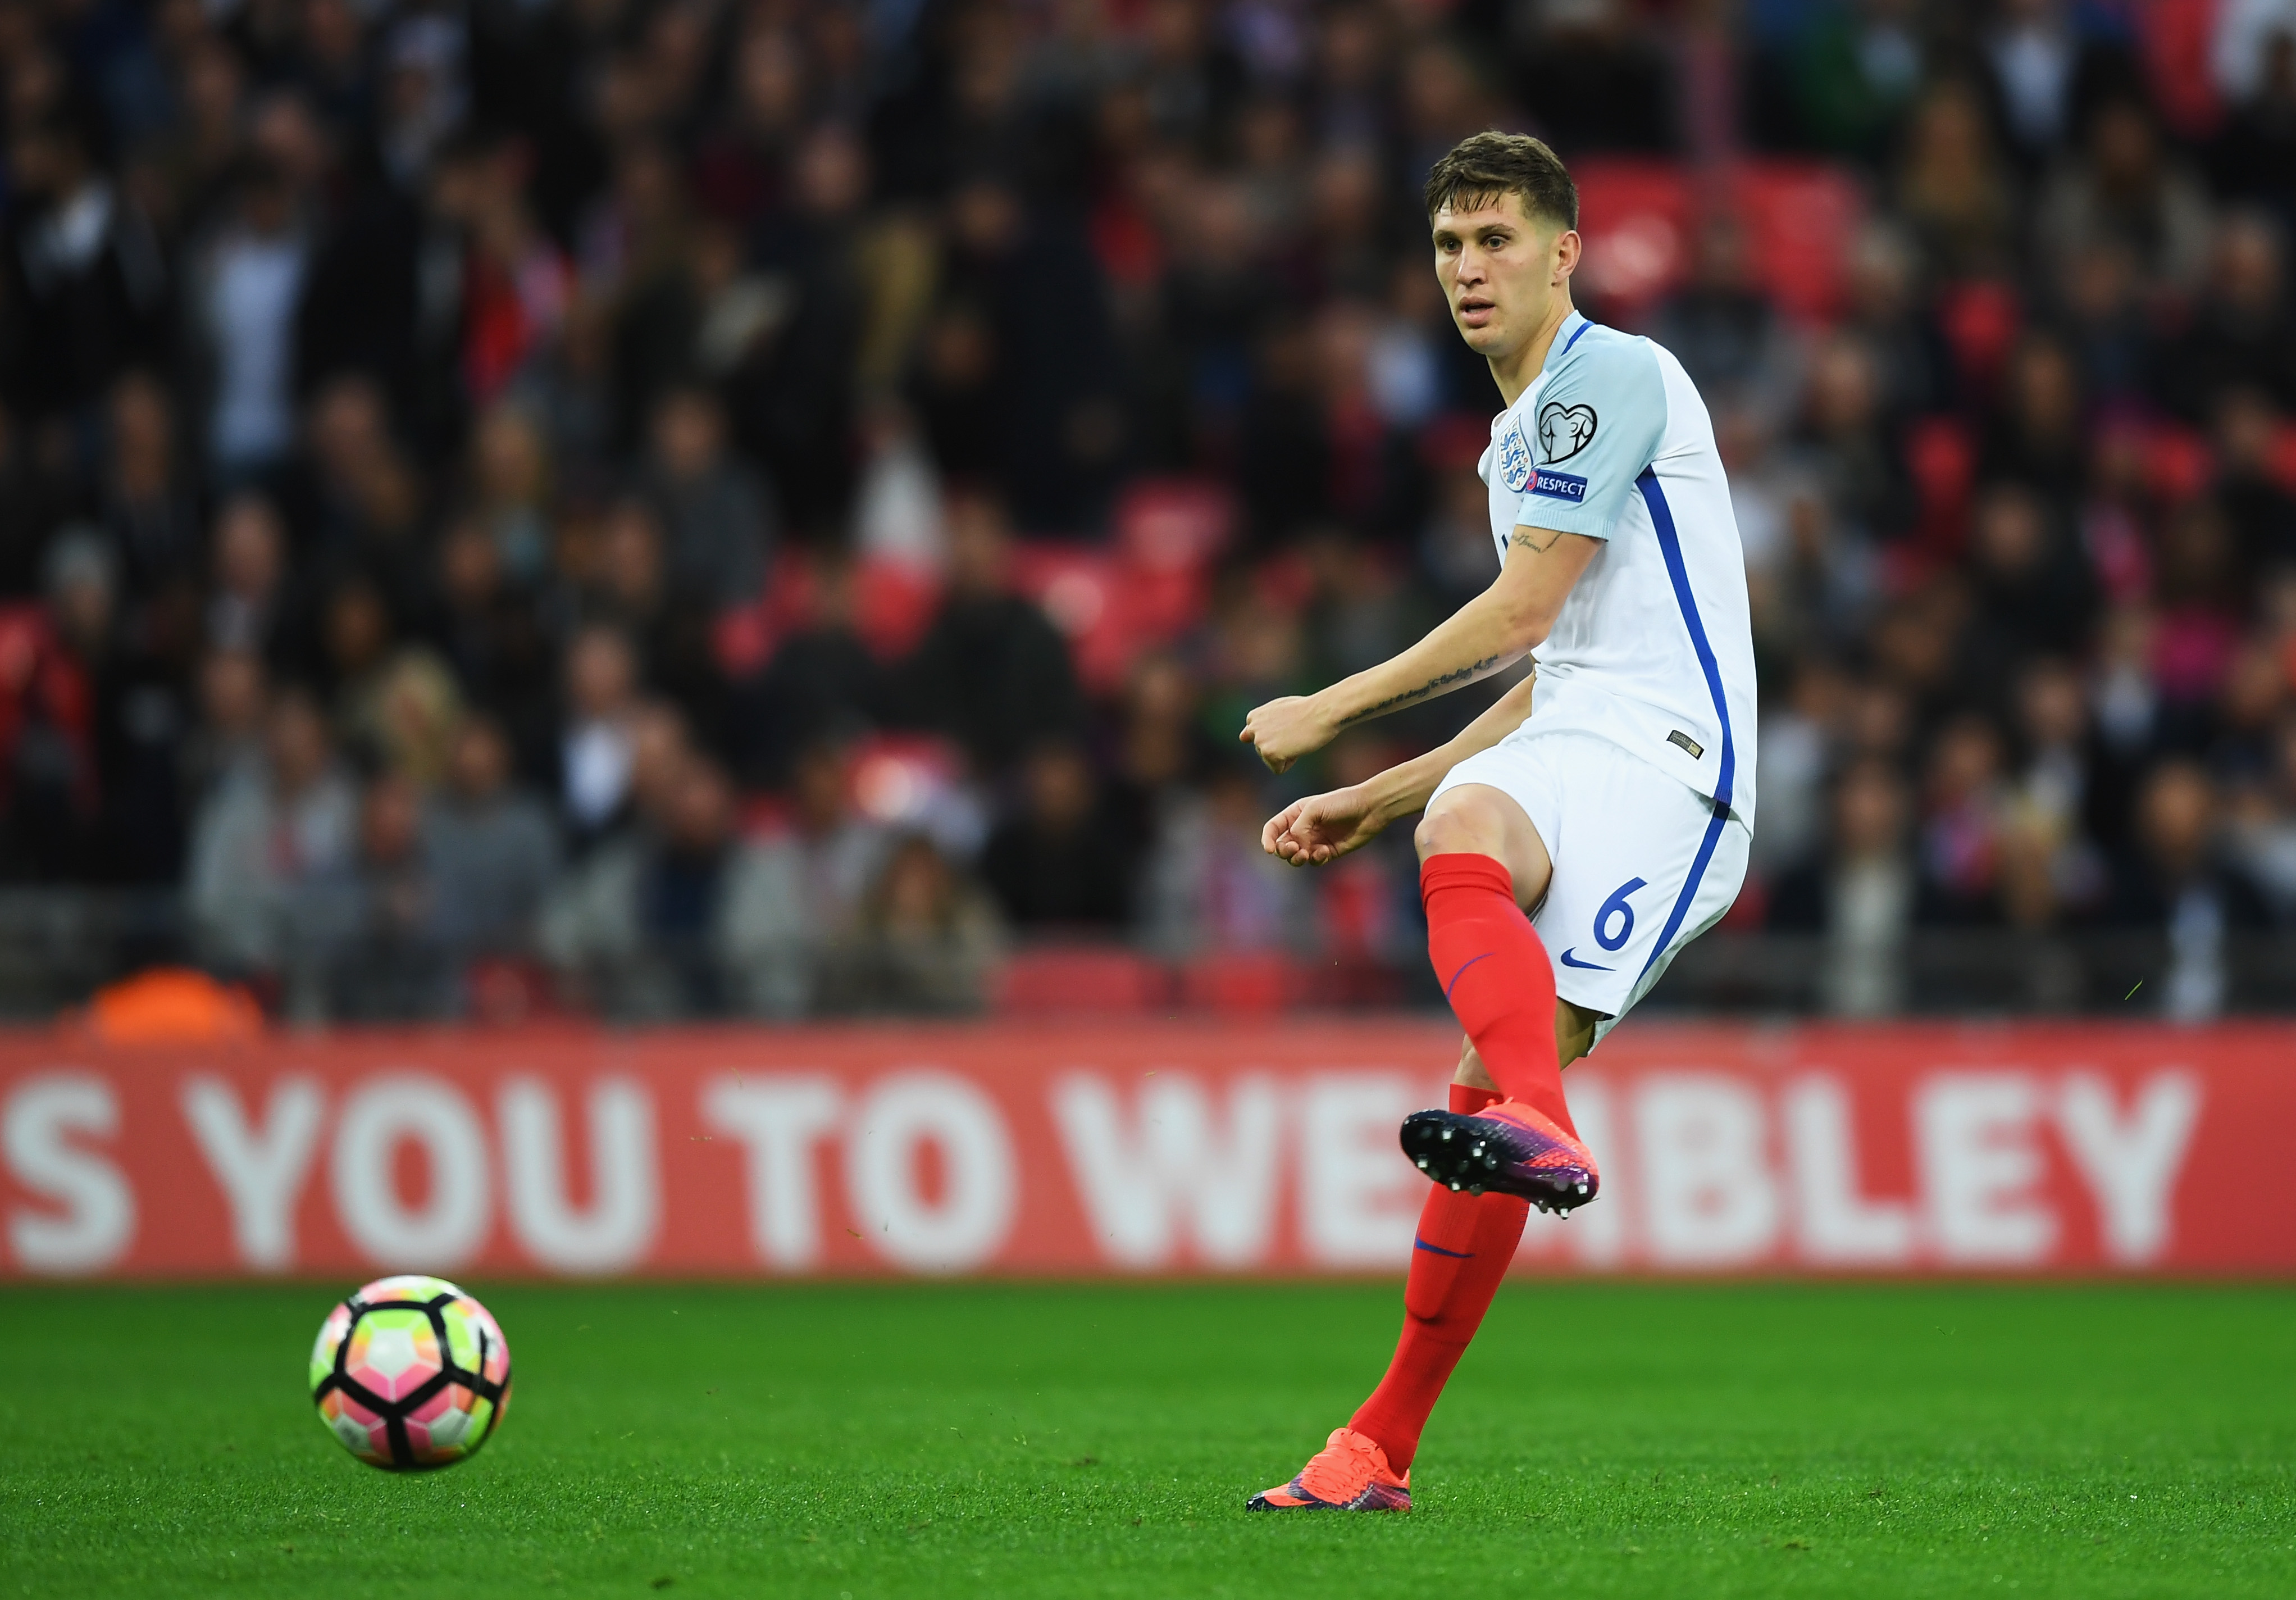 John Stones reminds me of Ronald Koeman says Pep Guardiola